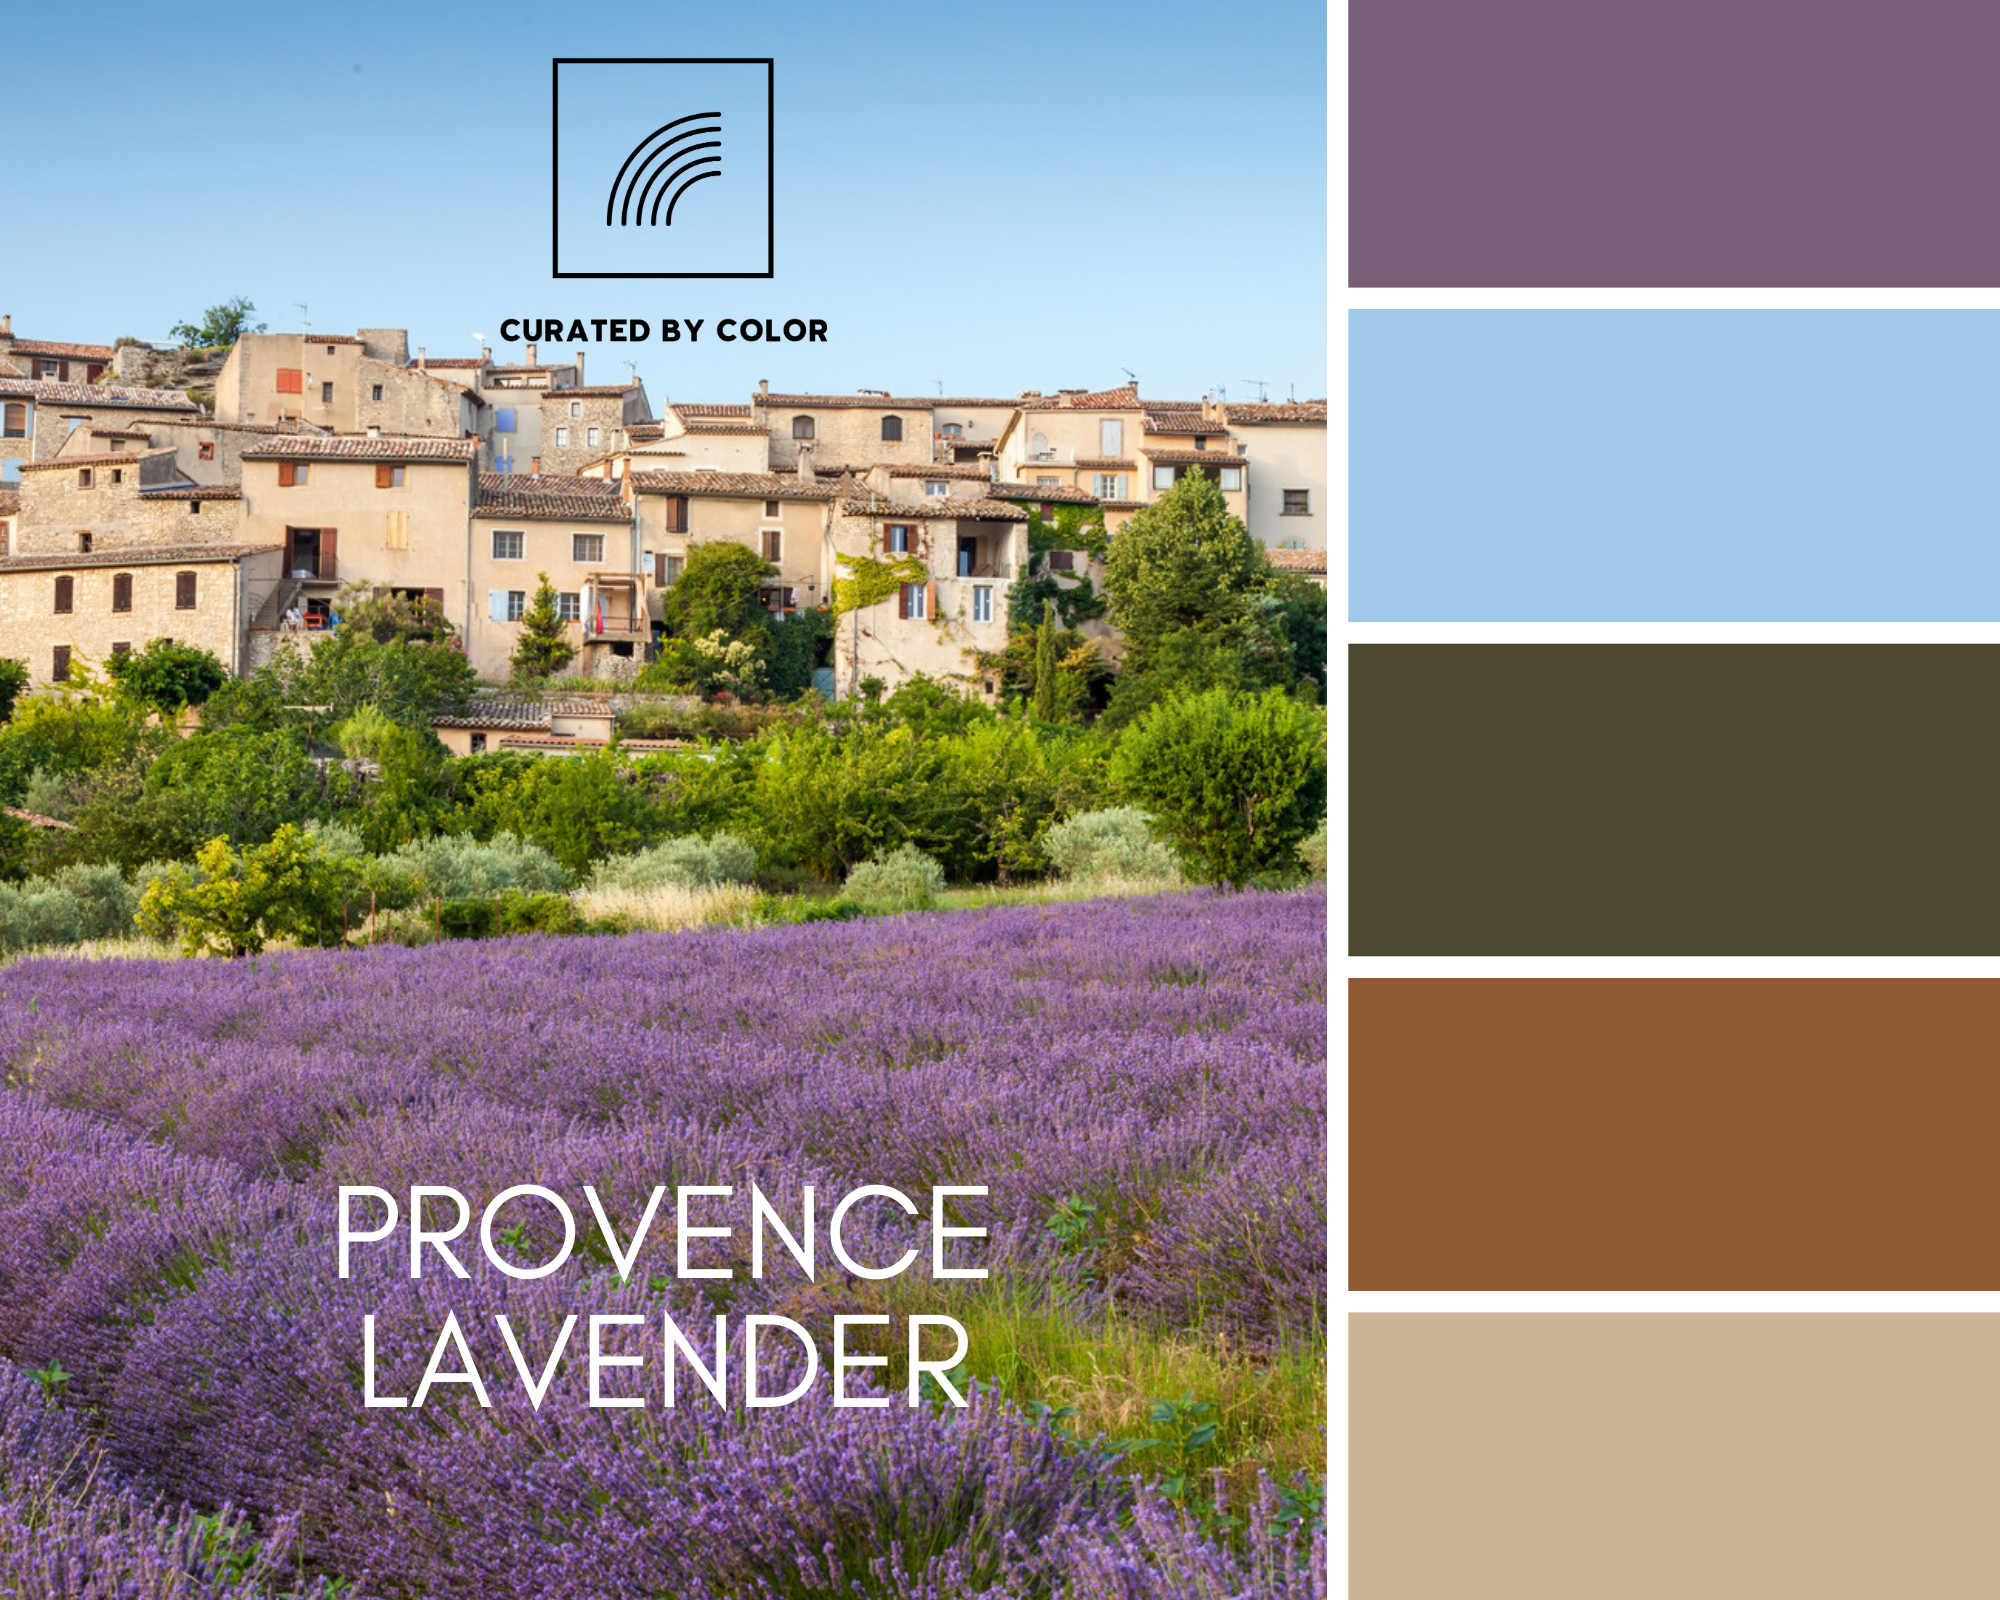 Southern France Provence lavender countryside landscape nature outdoors tranquil earth tone color palette